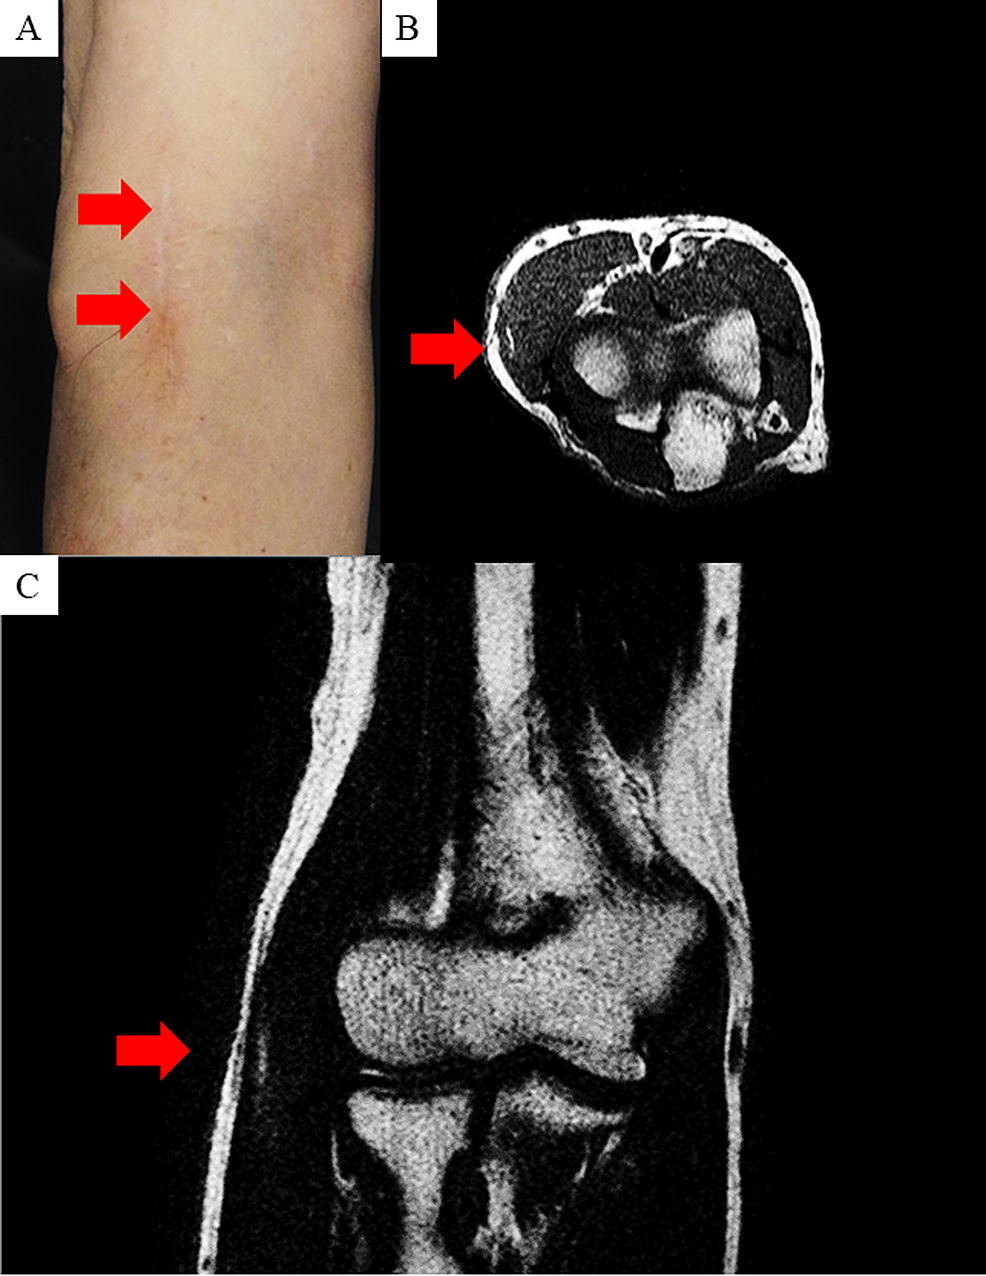 Appearance-and-magnetic-resonance-imaging-(MRI)-features-of-the-right-elbow.